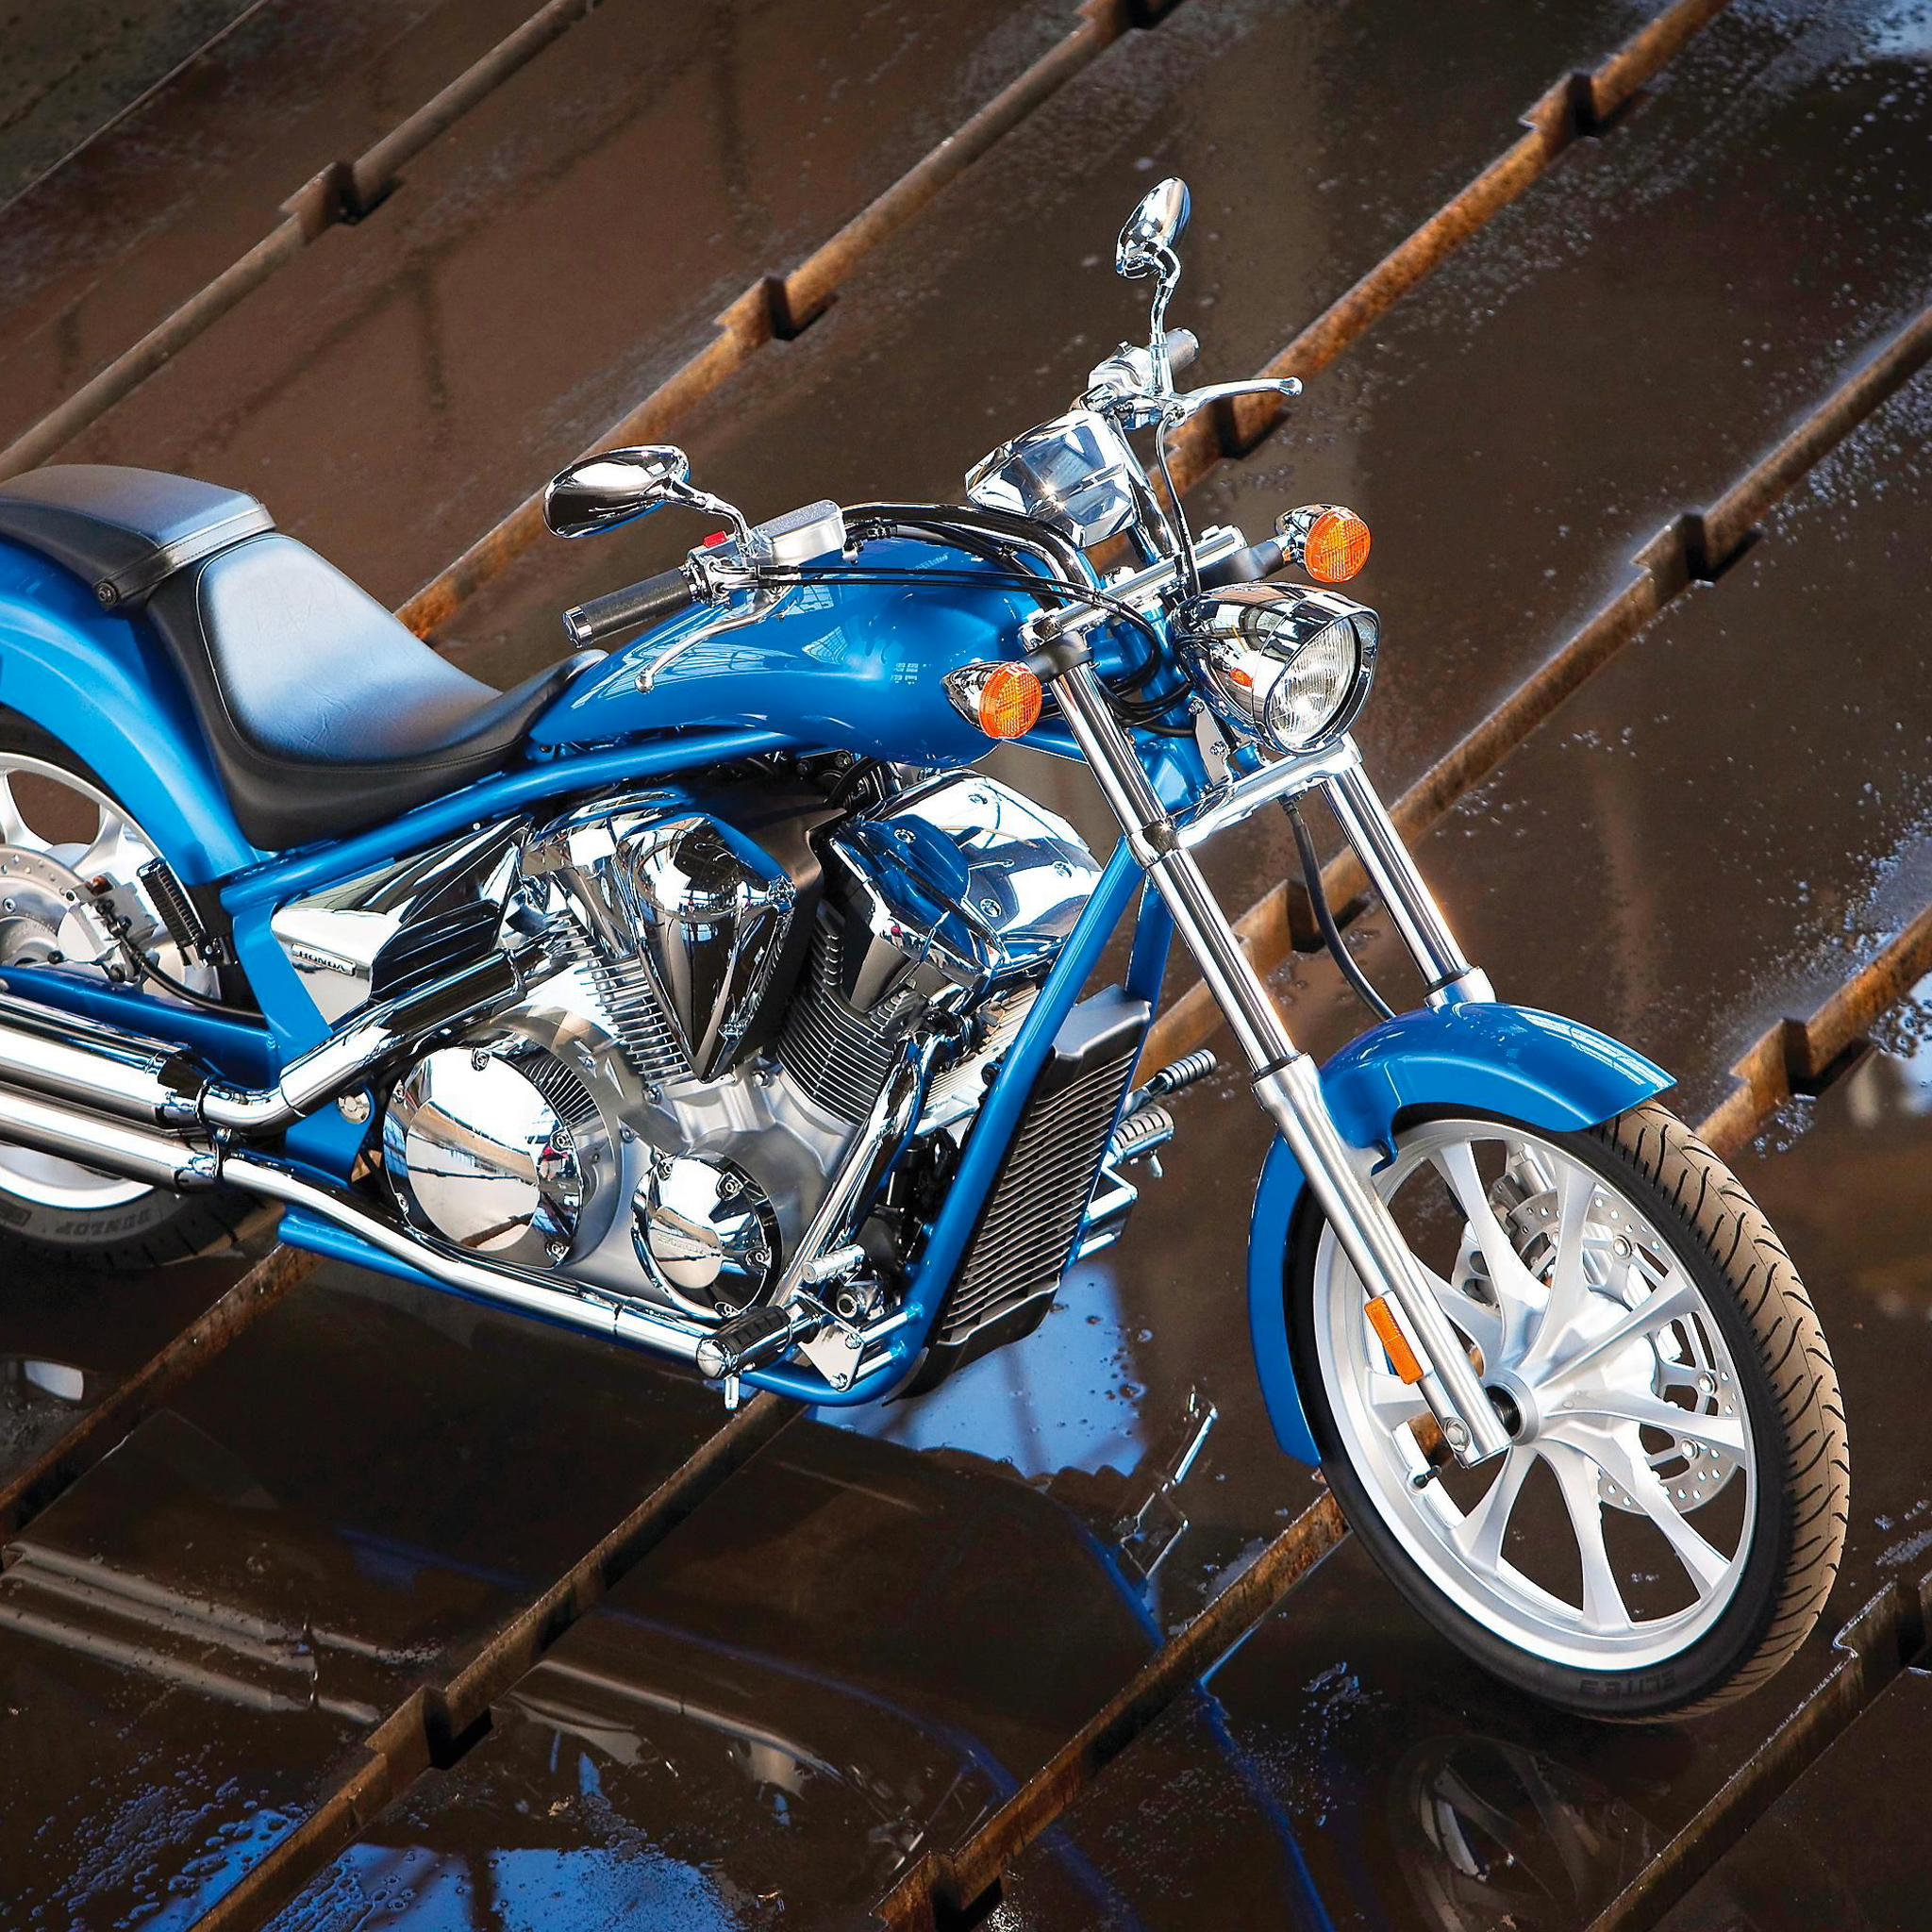 Honda Fury 3Wallpapers iPad Retina Honda Fury   iPad Retina